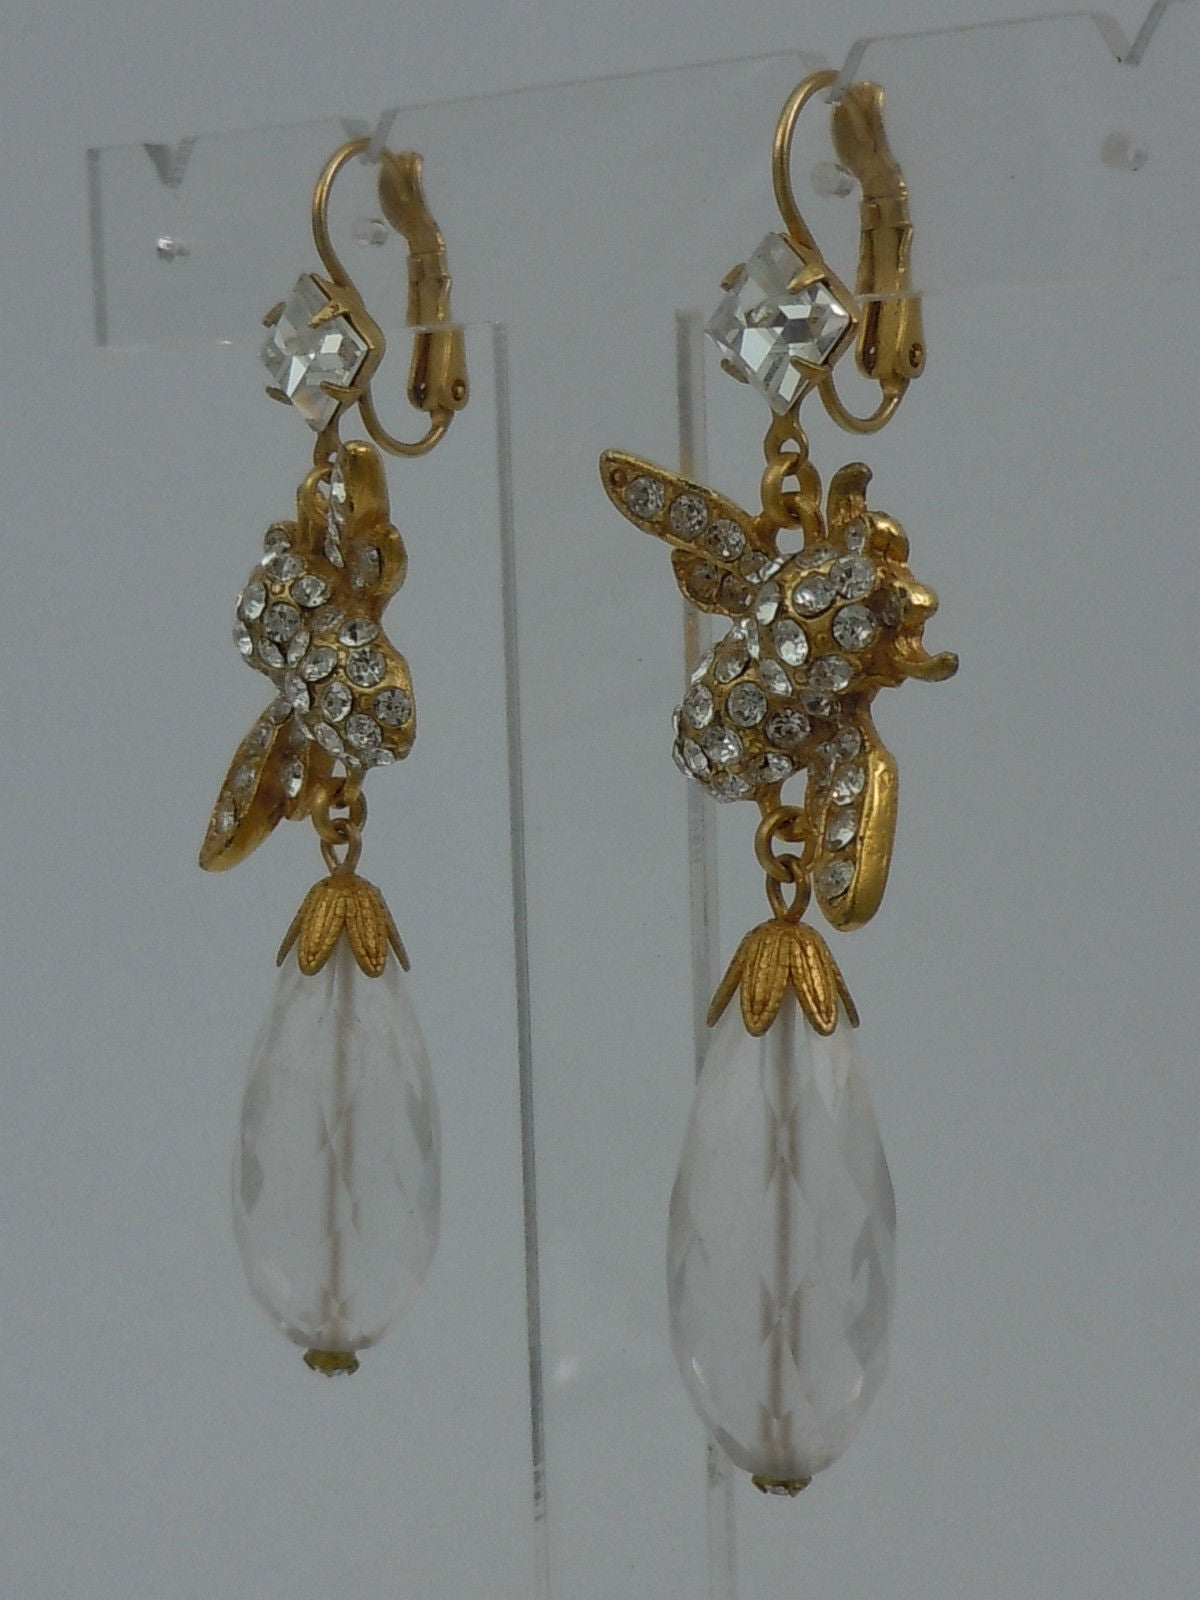 06132f6e1e22 Featuring Antiqued Gilt Bees set with Crystal Glass Chatons suspended from  Lever back earring fittings with